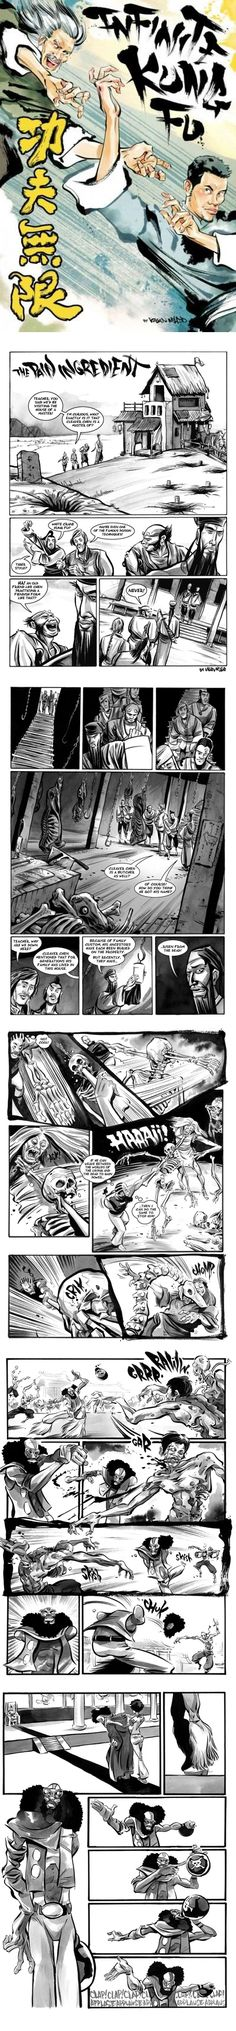 """""""The best elements of horror, Westerns, and of course, kung fu films are seamlessly interlaced to tell a highly imaginative tale. You couldn't sandblast the smile from my face as I read this."""" -- Ain't It Cool News  """"Stunningly gorgeous... McLeod's unique brand of comic book wizardry practically oozes out of every panel as his art delivers animated stylings with a hip-hop flavor."""" -- Complex"""